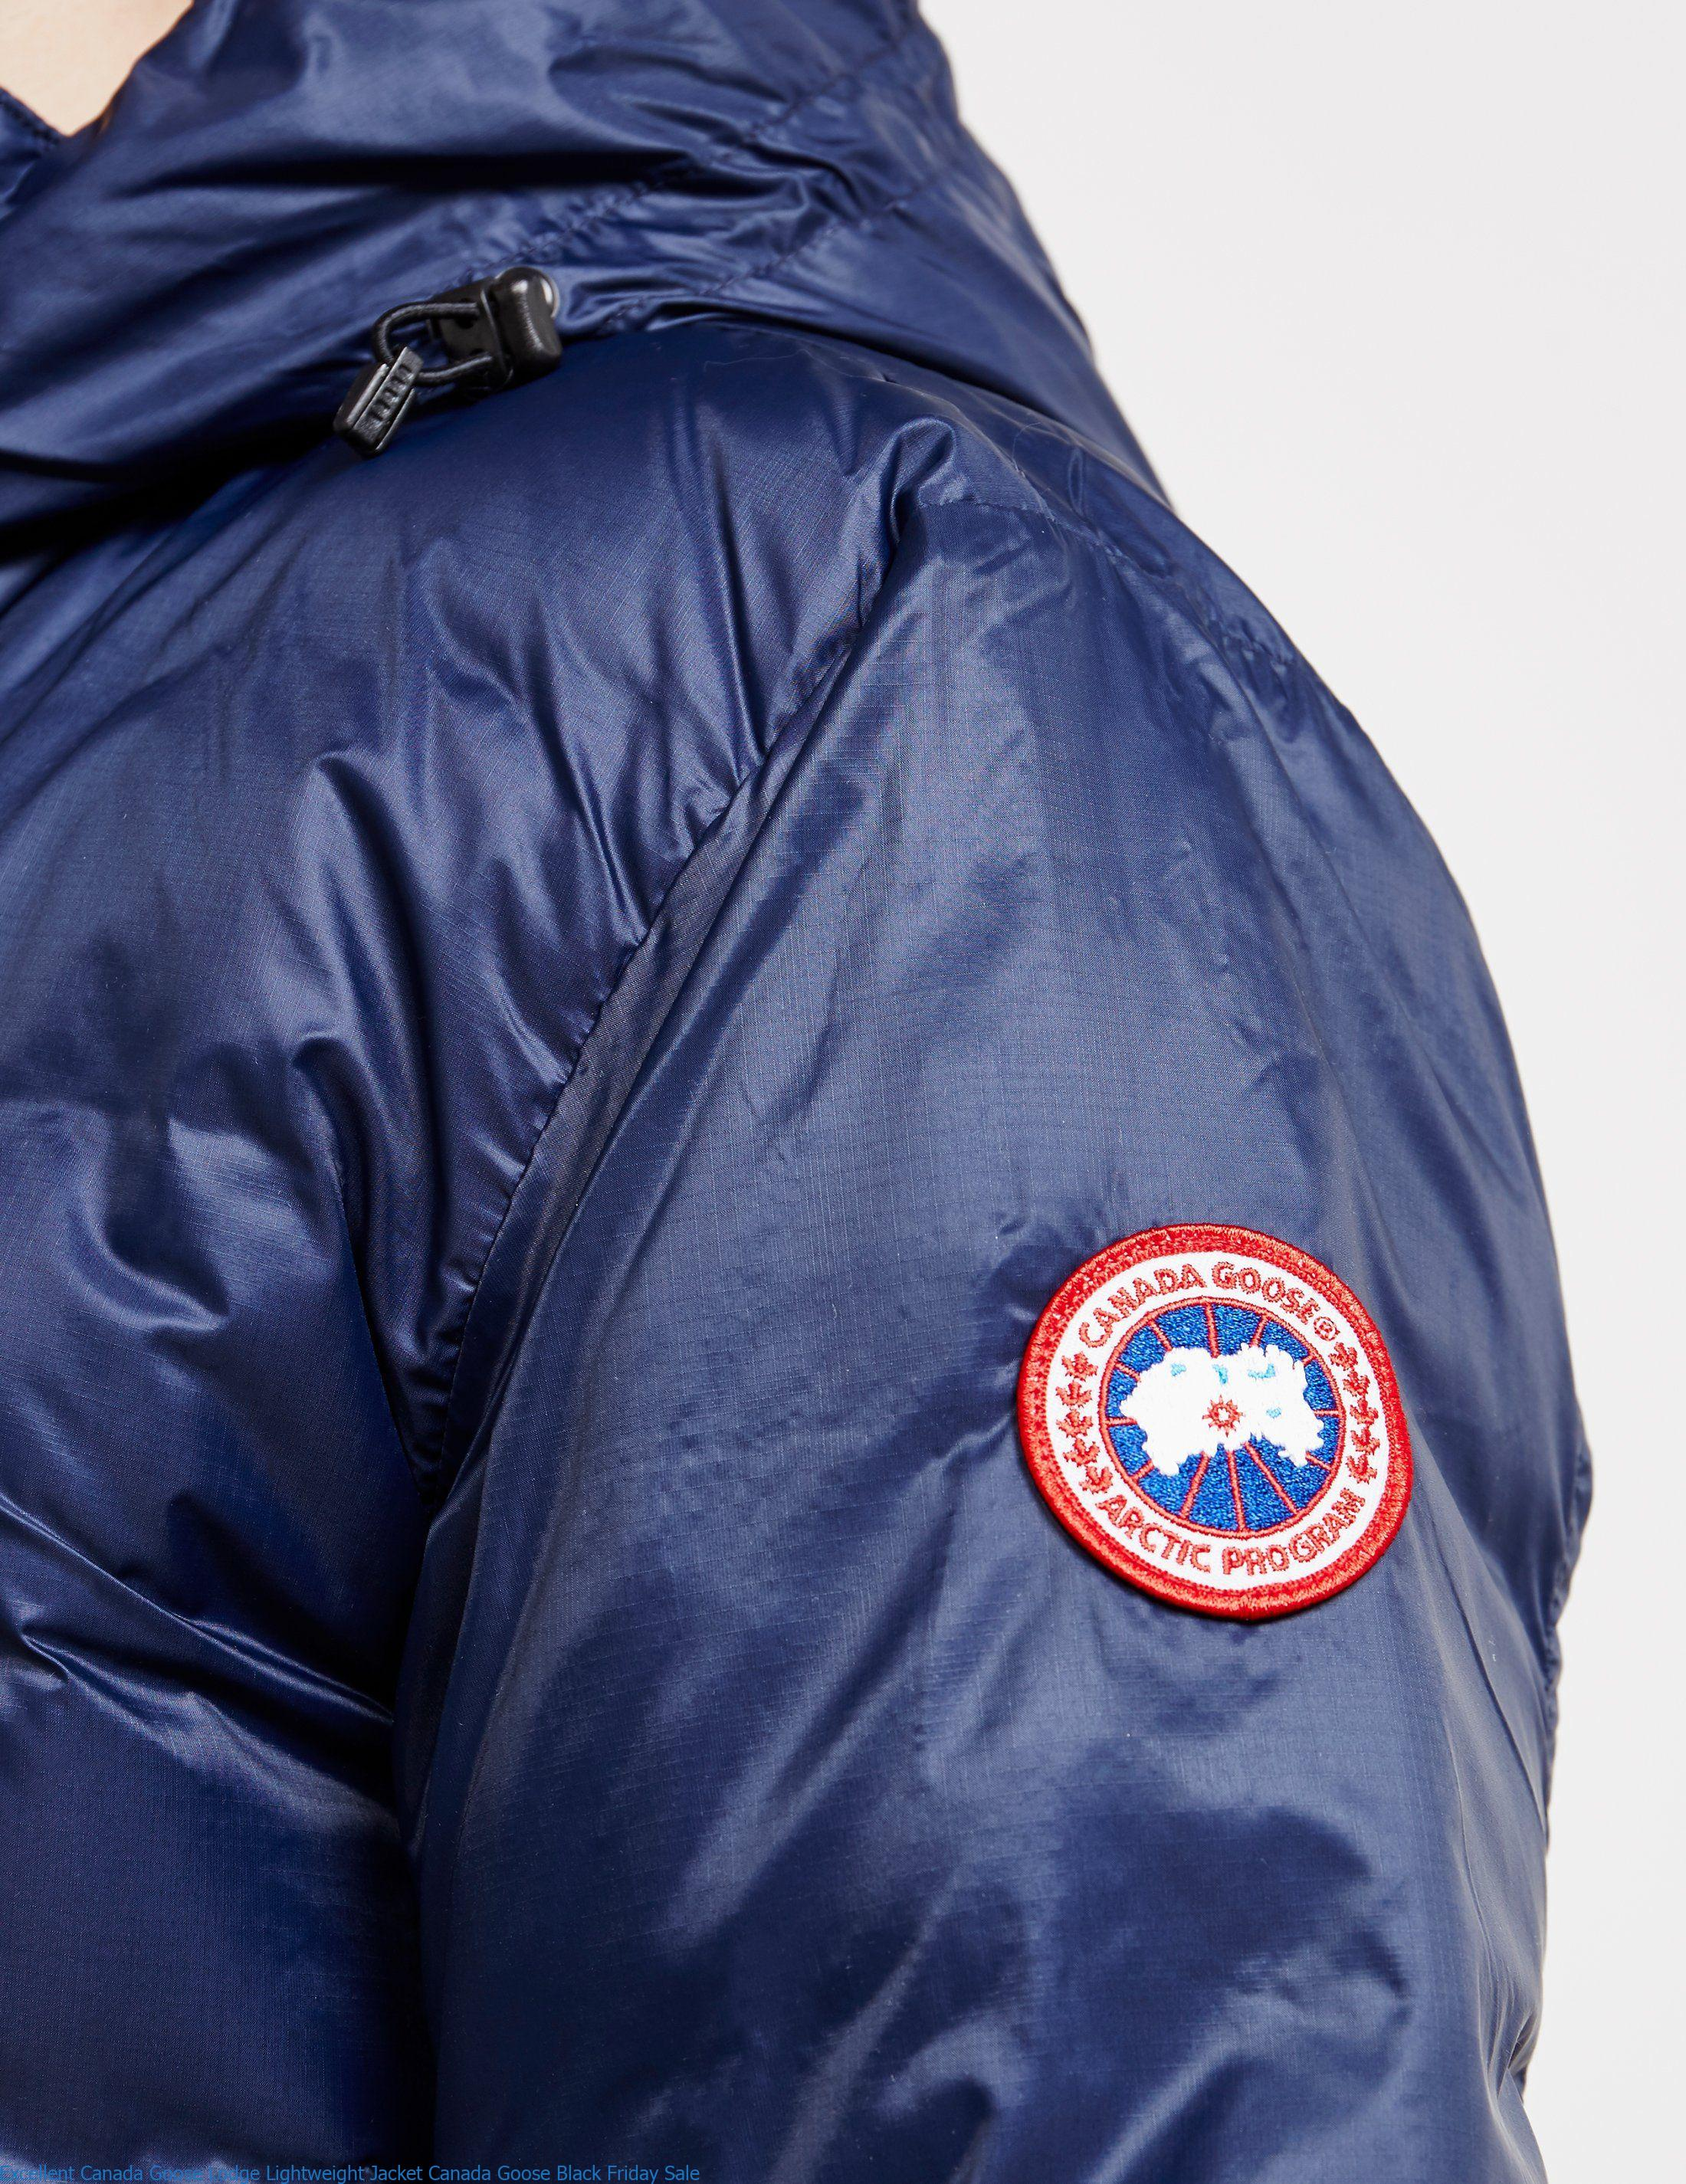 Excellent Canada Goose Lodge Lightweight Jacket Canada Goose Black Friday Sale Canada Goose Sale Outlet Cheap Parka Online Shop Free Shipping